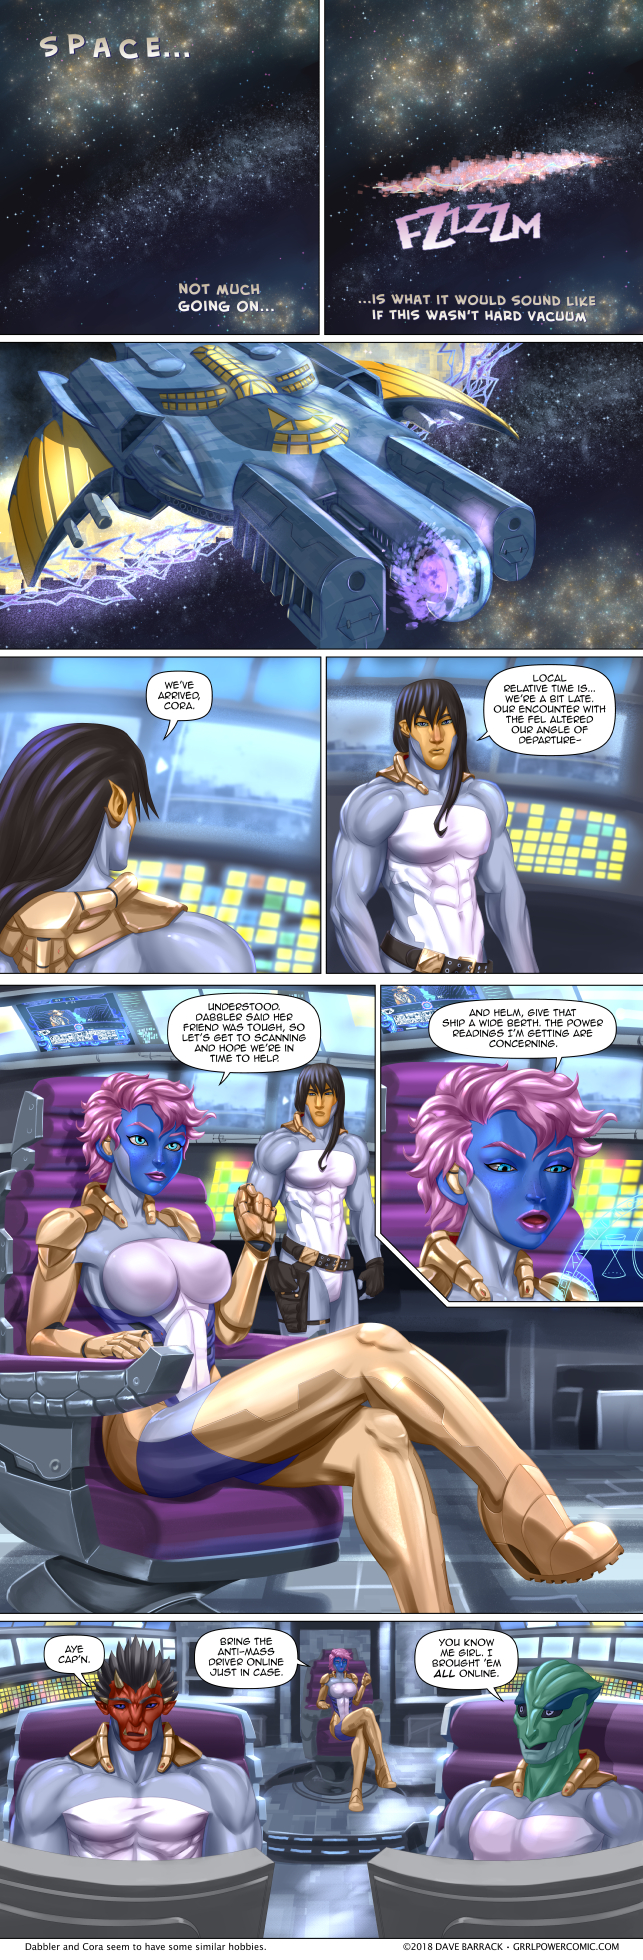 Grrl Power #674 – Space cavalry